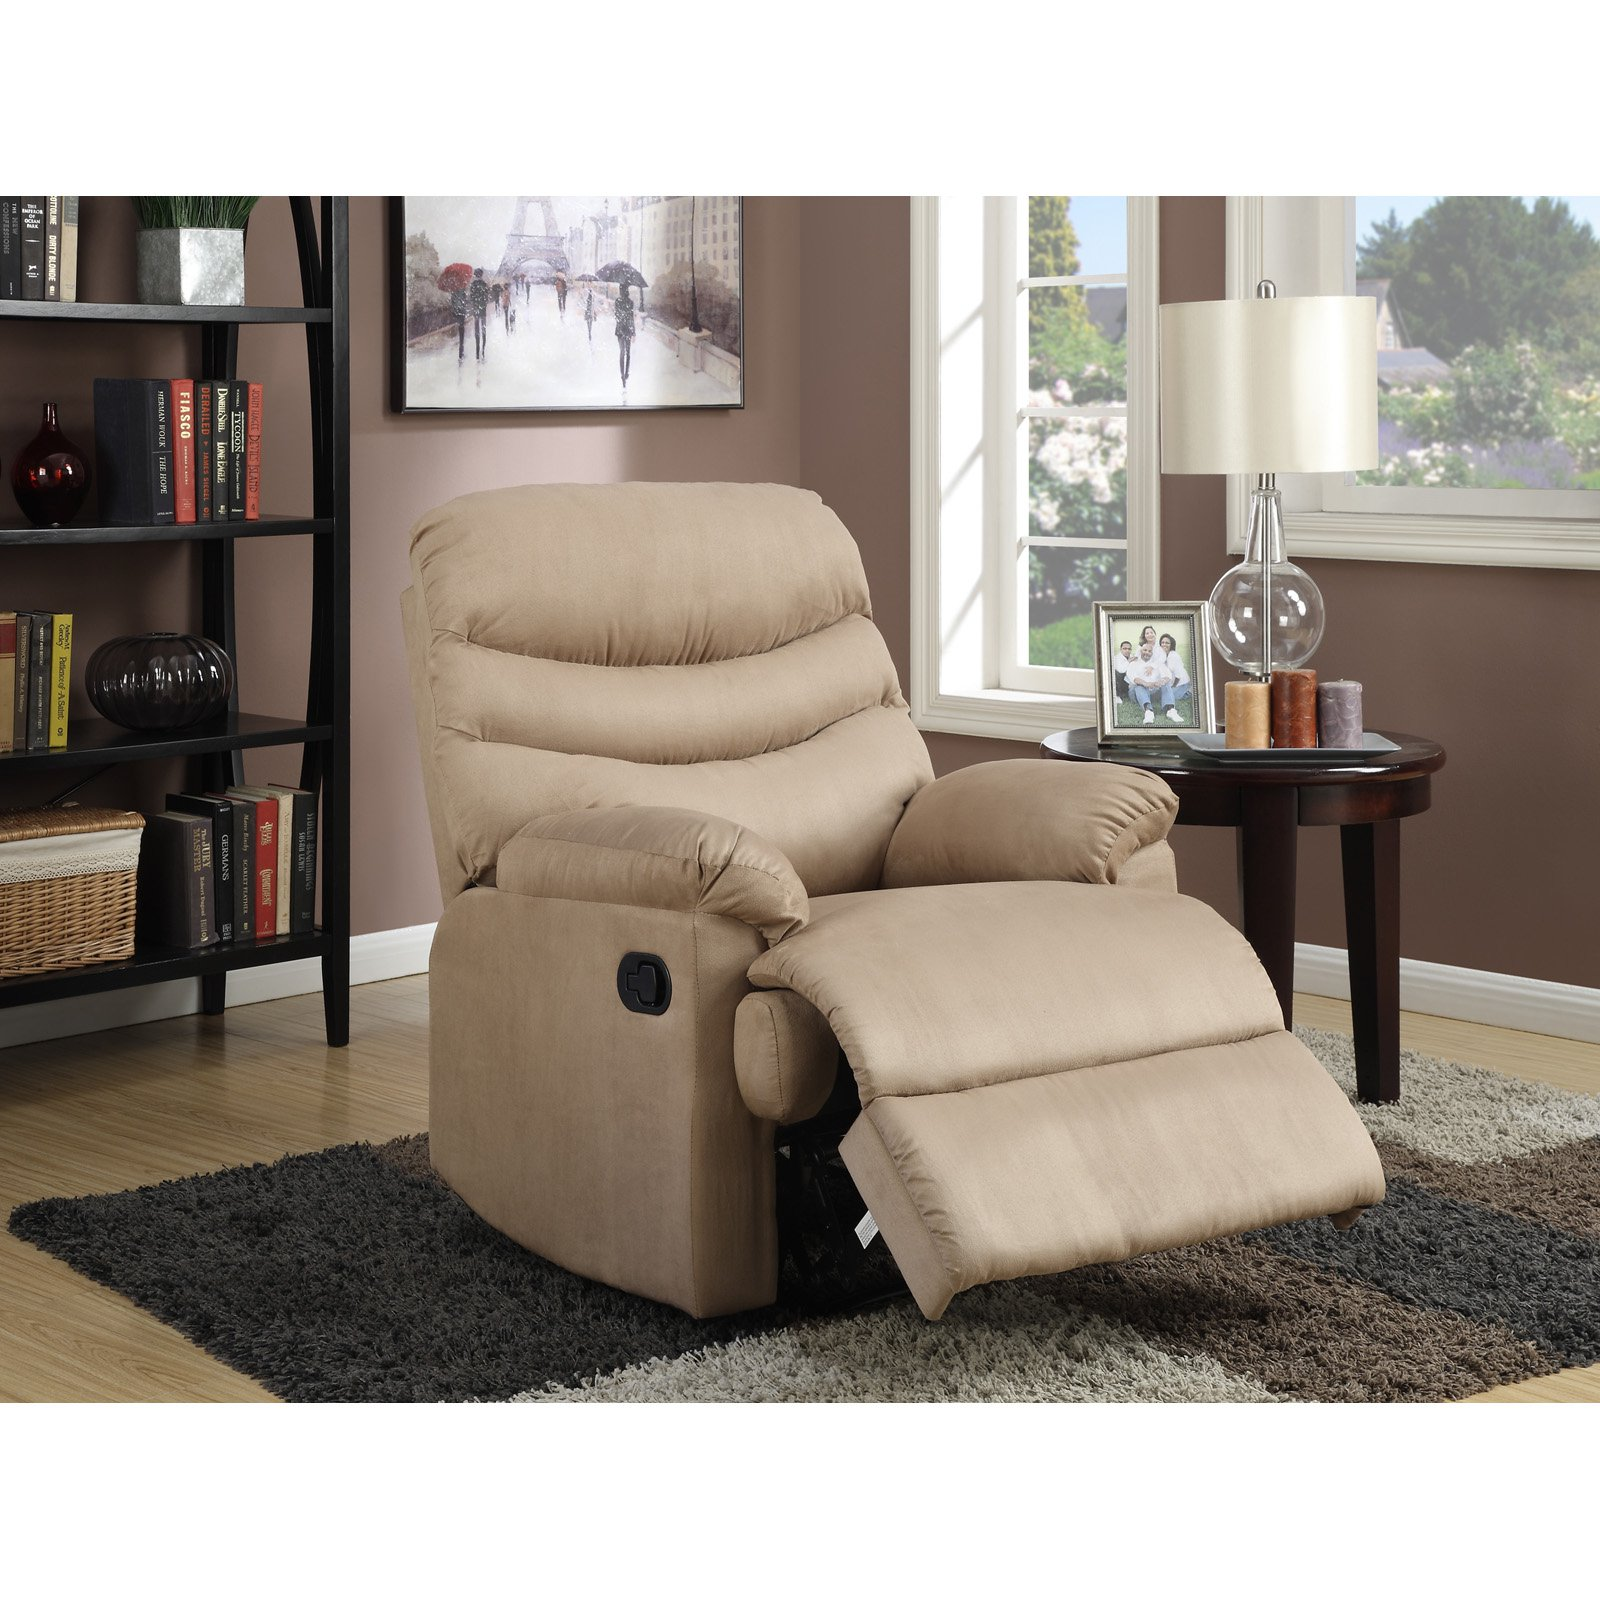 NH Designs 72007 Microfiber Recliner